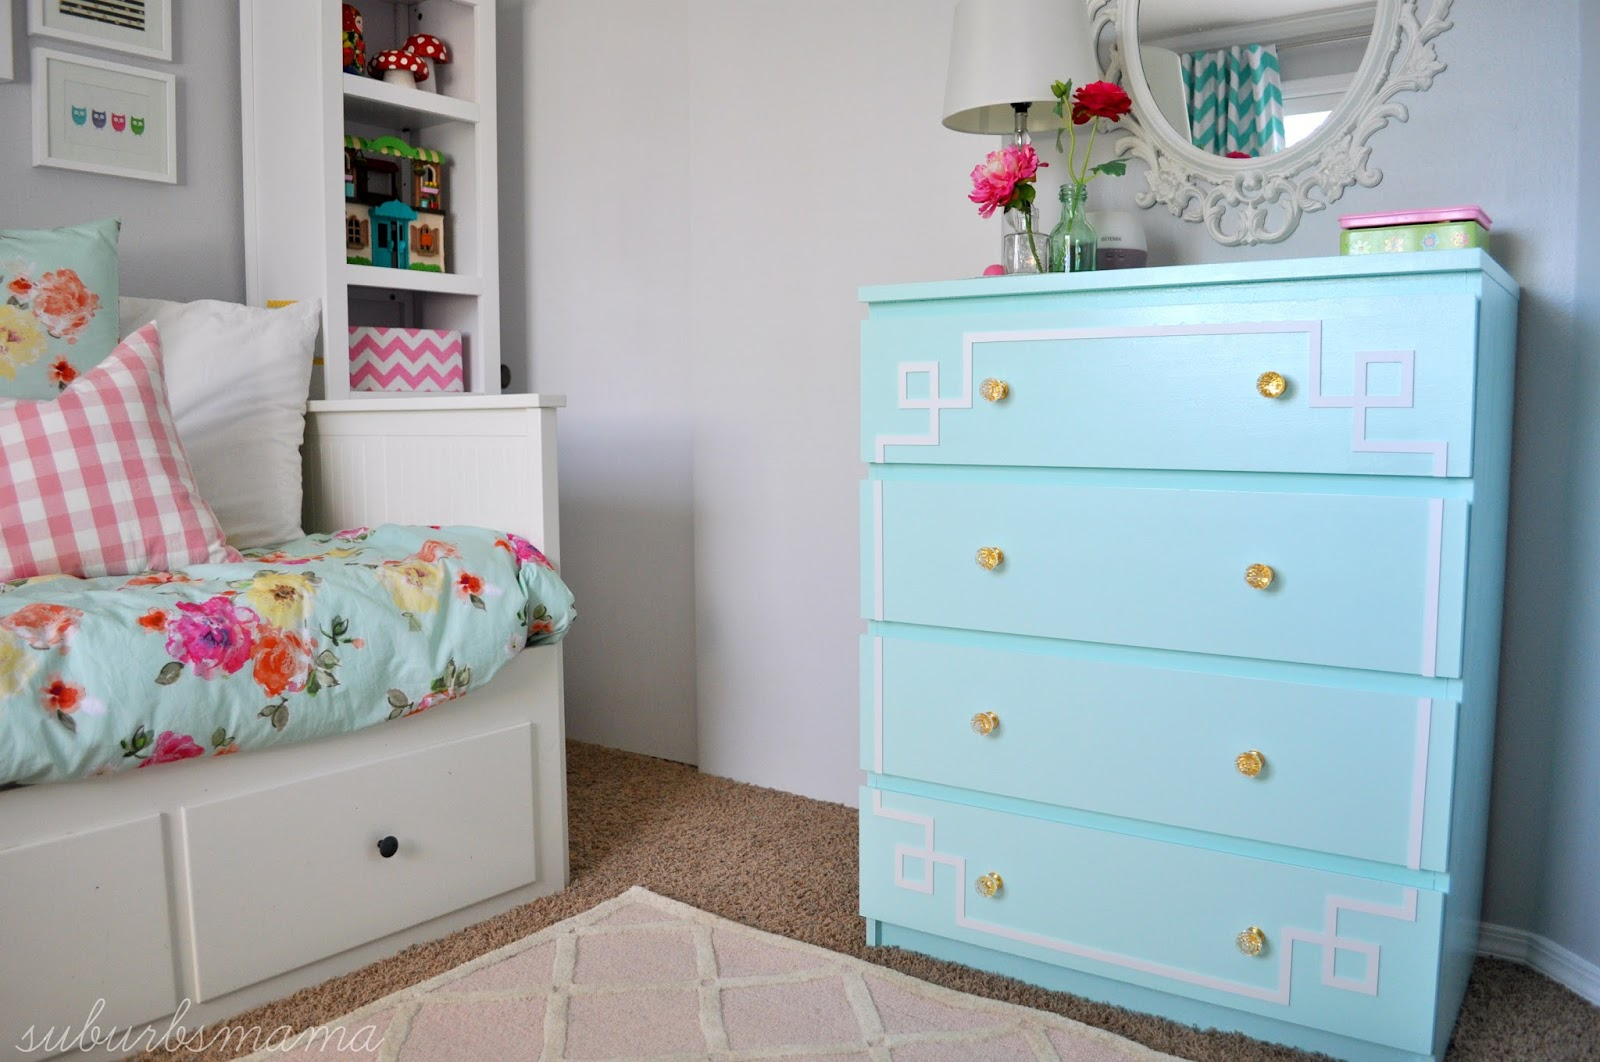 suburbs mama: ikea malm dresser hack (before and after)